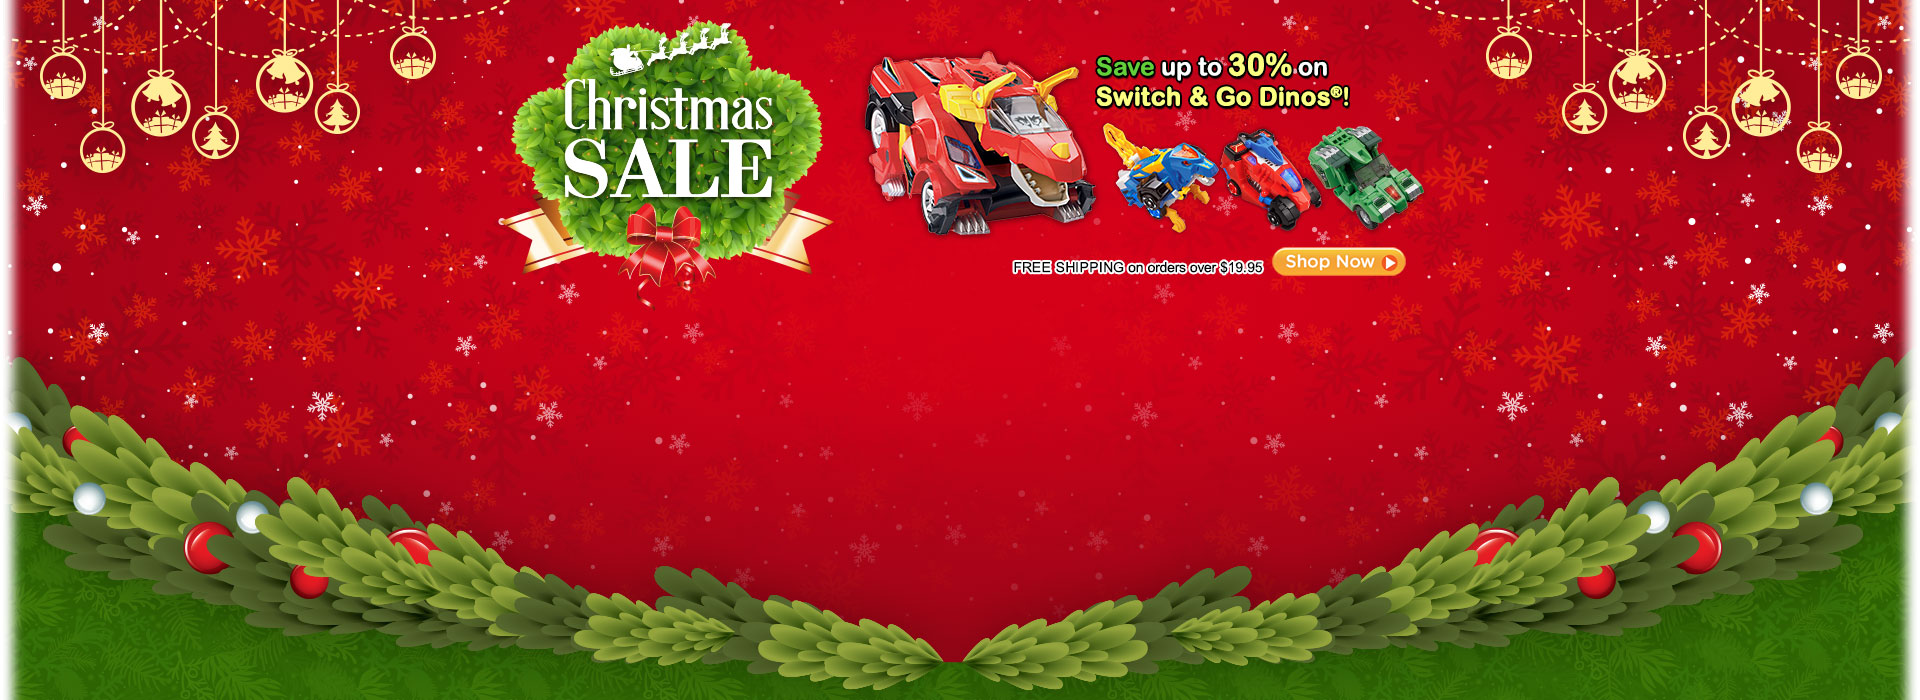 Christmas Sale - Save up to 30% on Switch & Go Dinos!